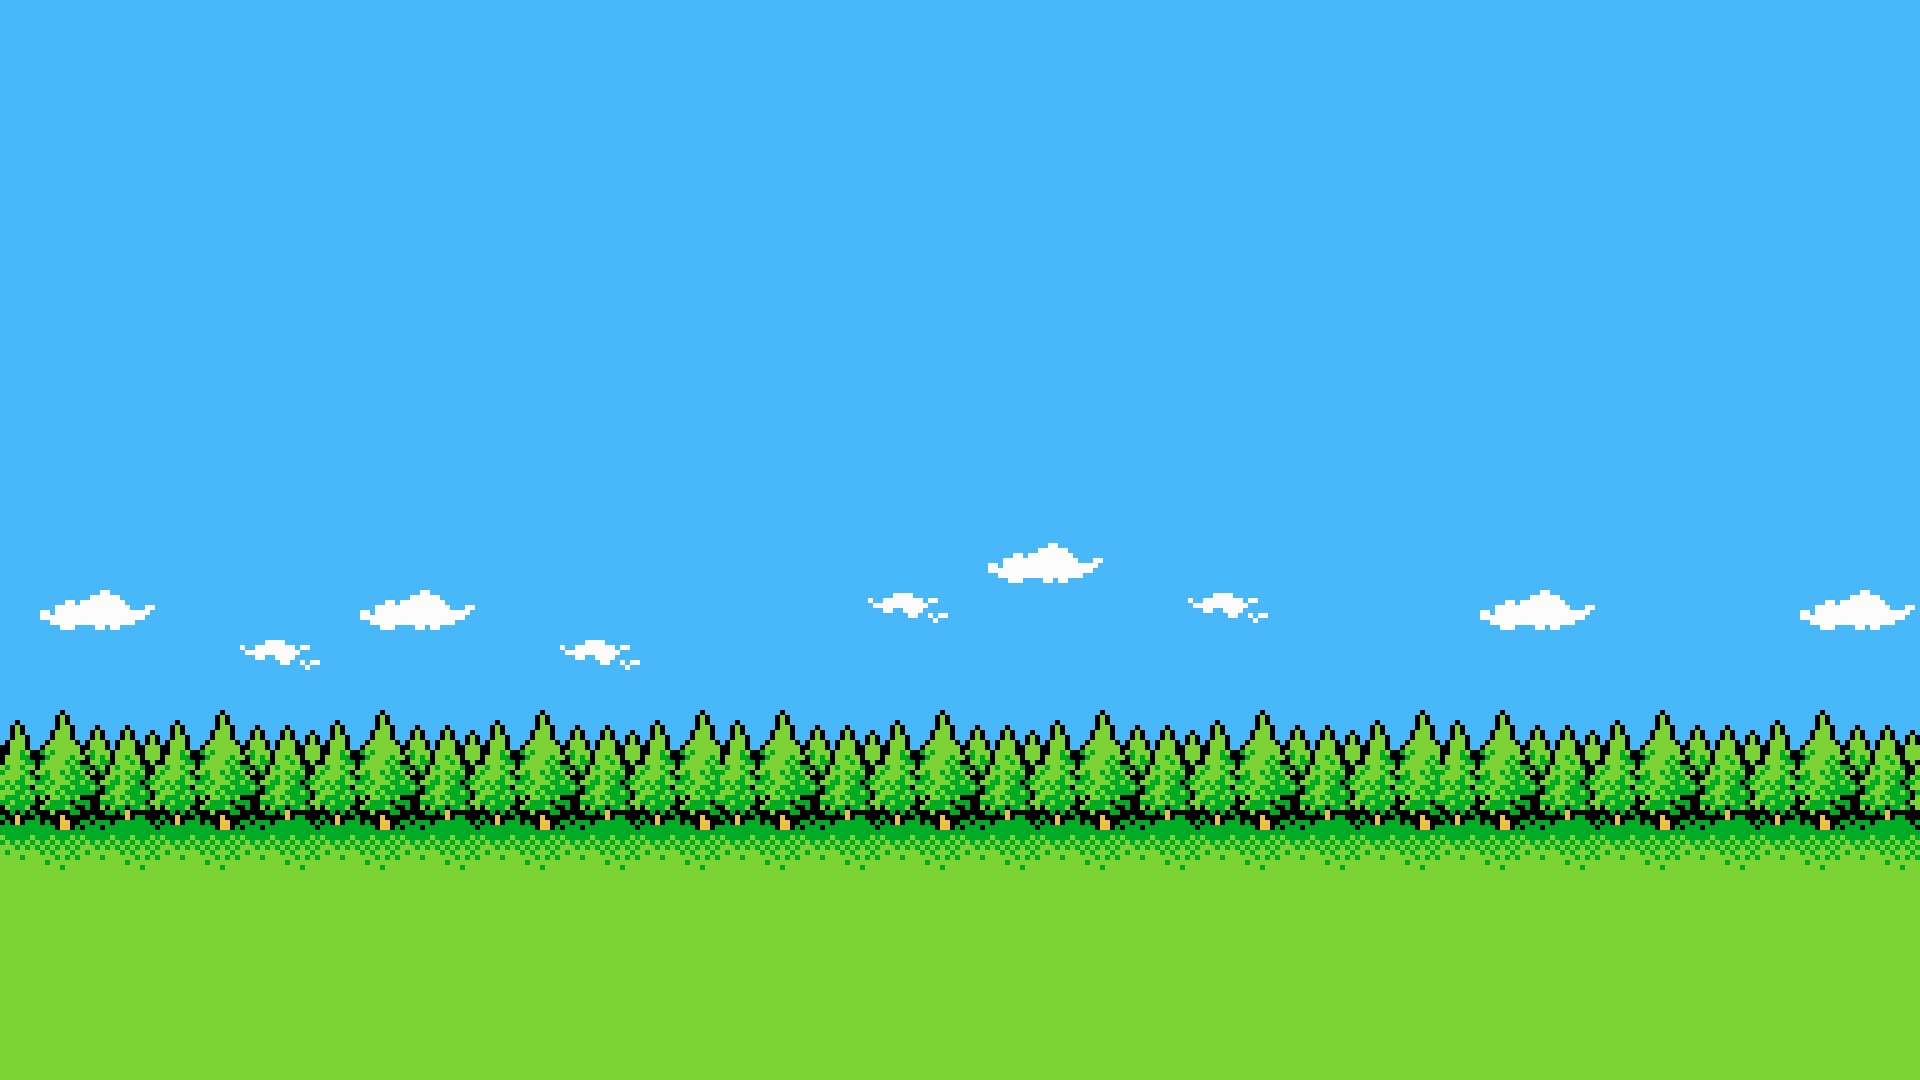 Pixel Art Wallpaper ·① Download Free HD Backgrounds For